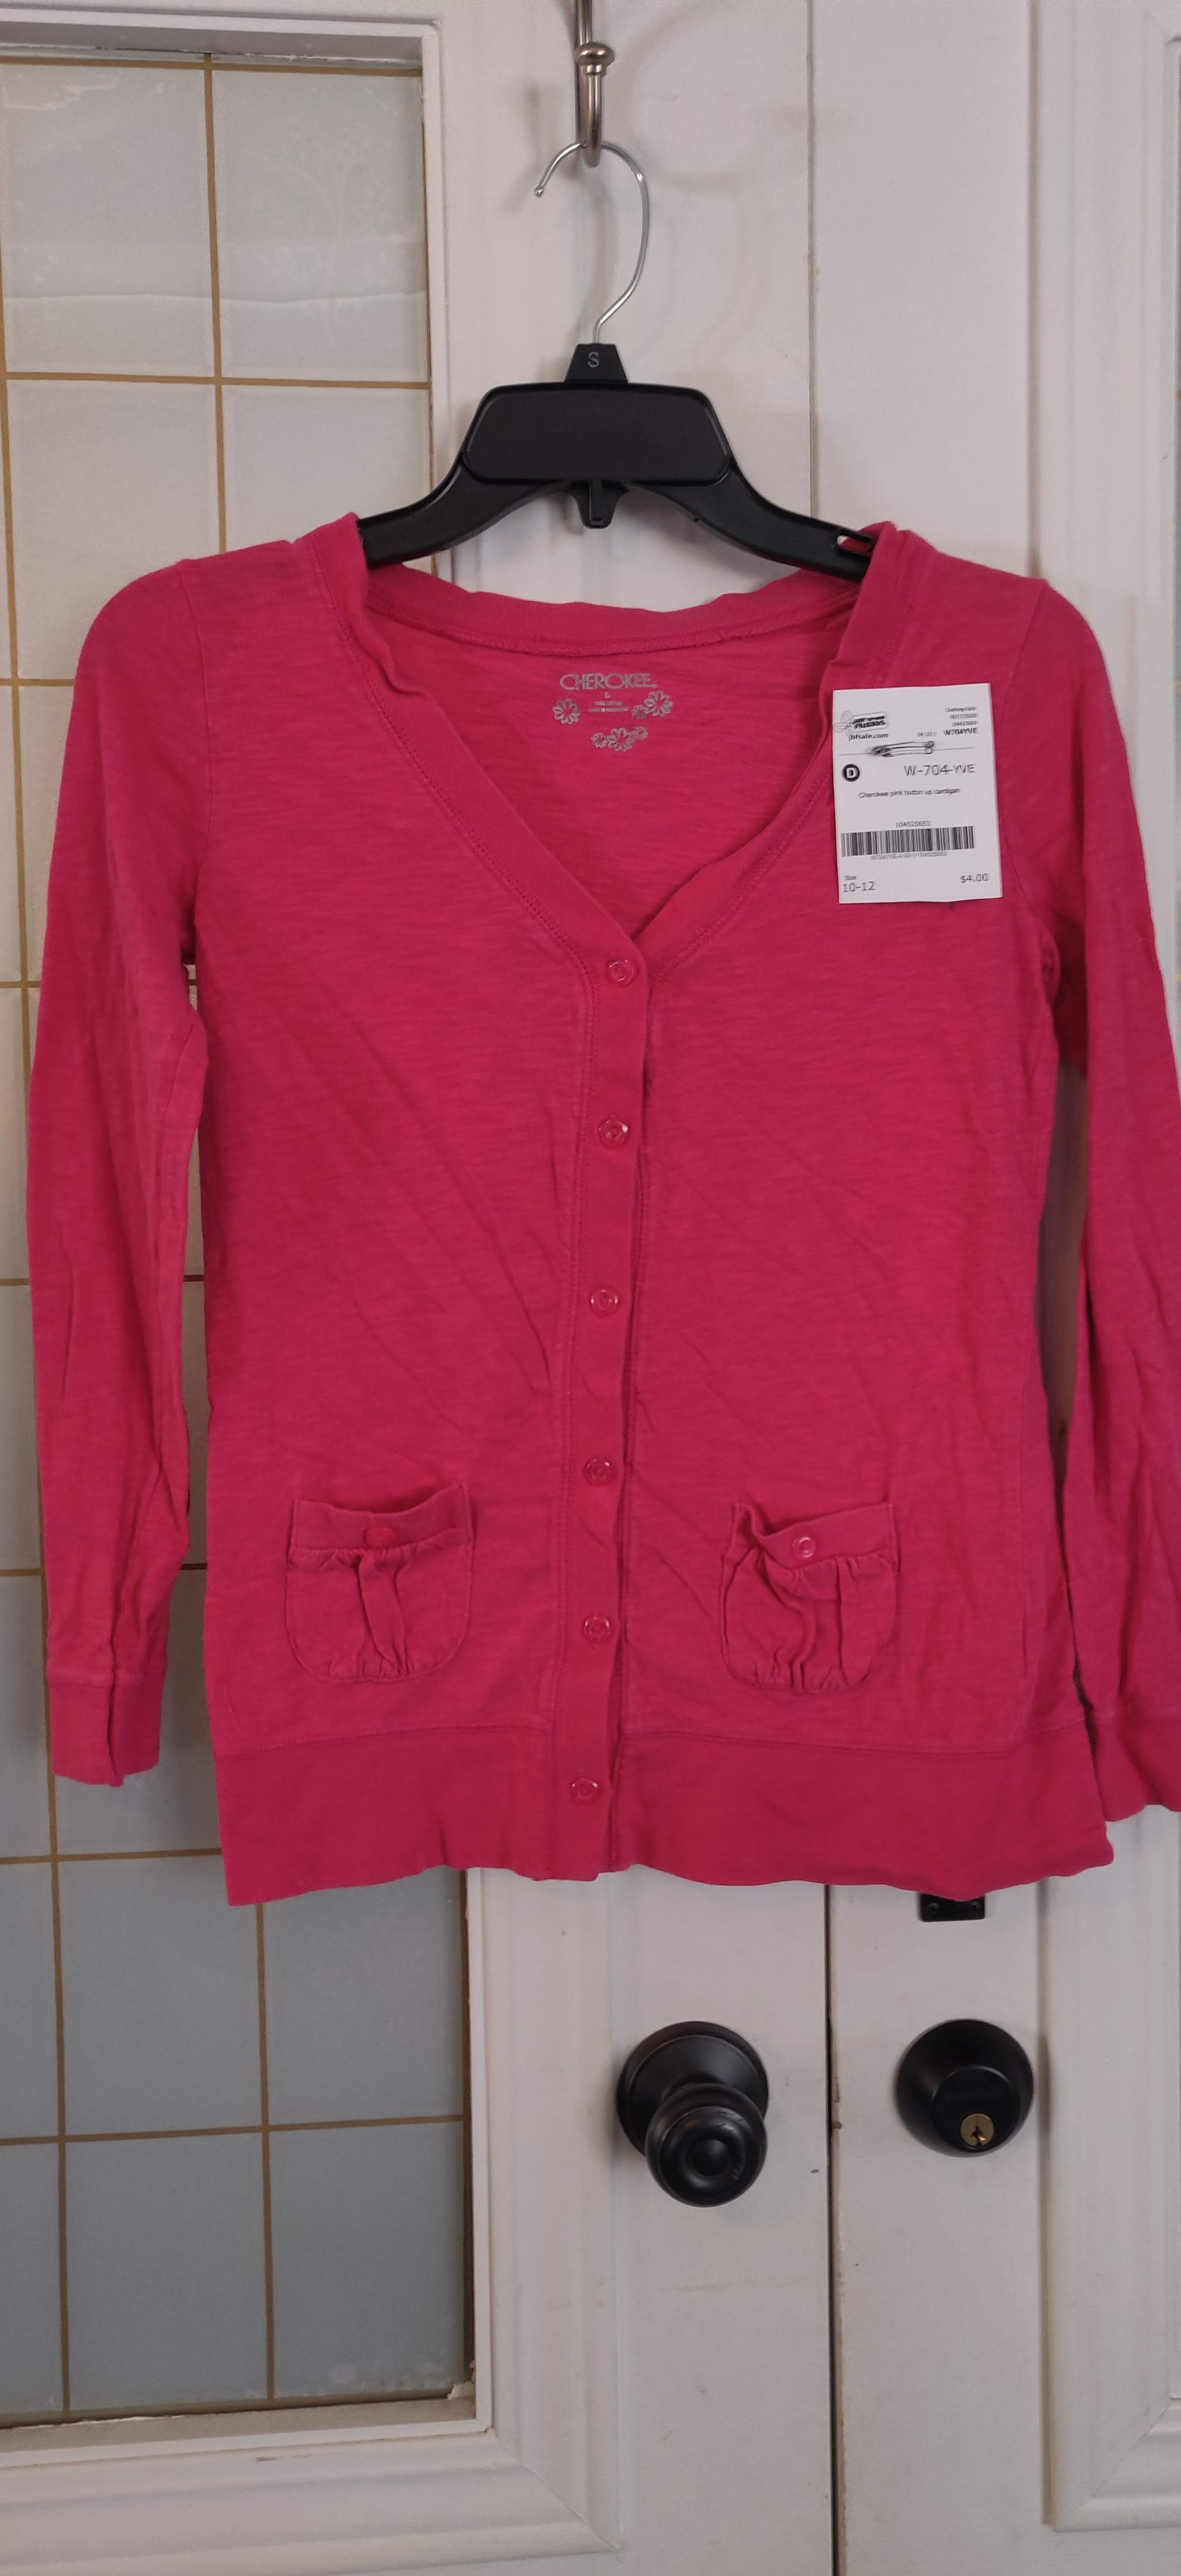 CHEROKEE pink button up cardigan: 10-12